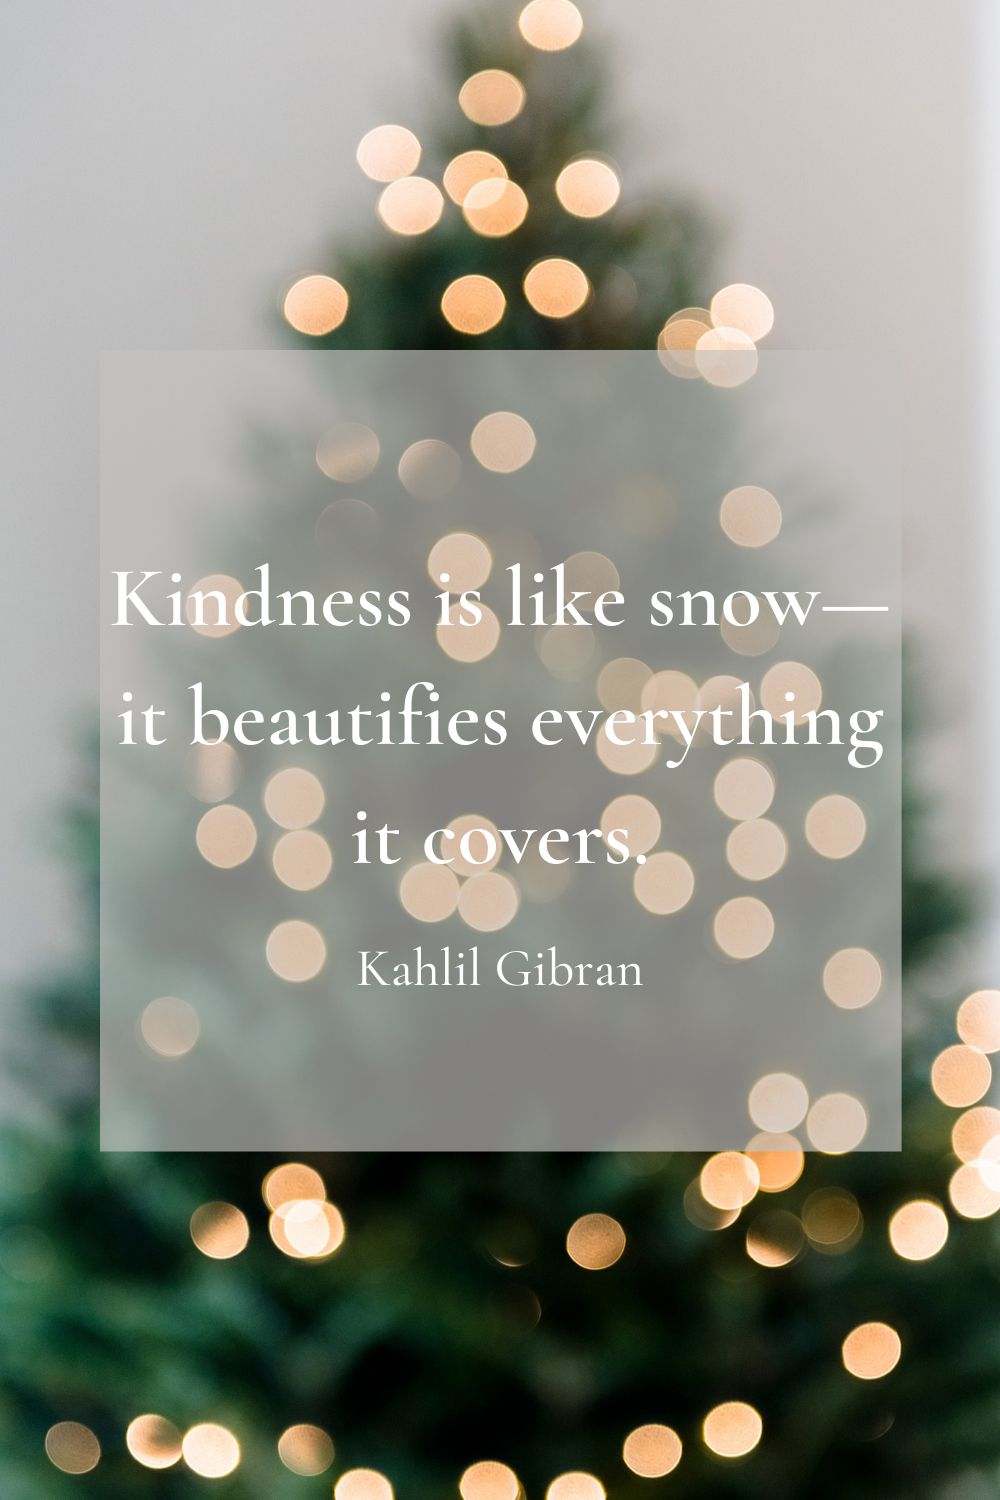 December Quotes That Will Spread Cheer for All To Hear